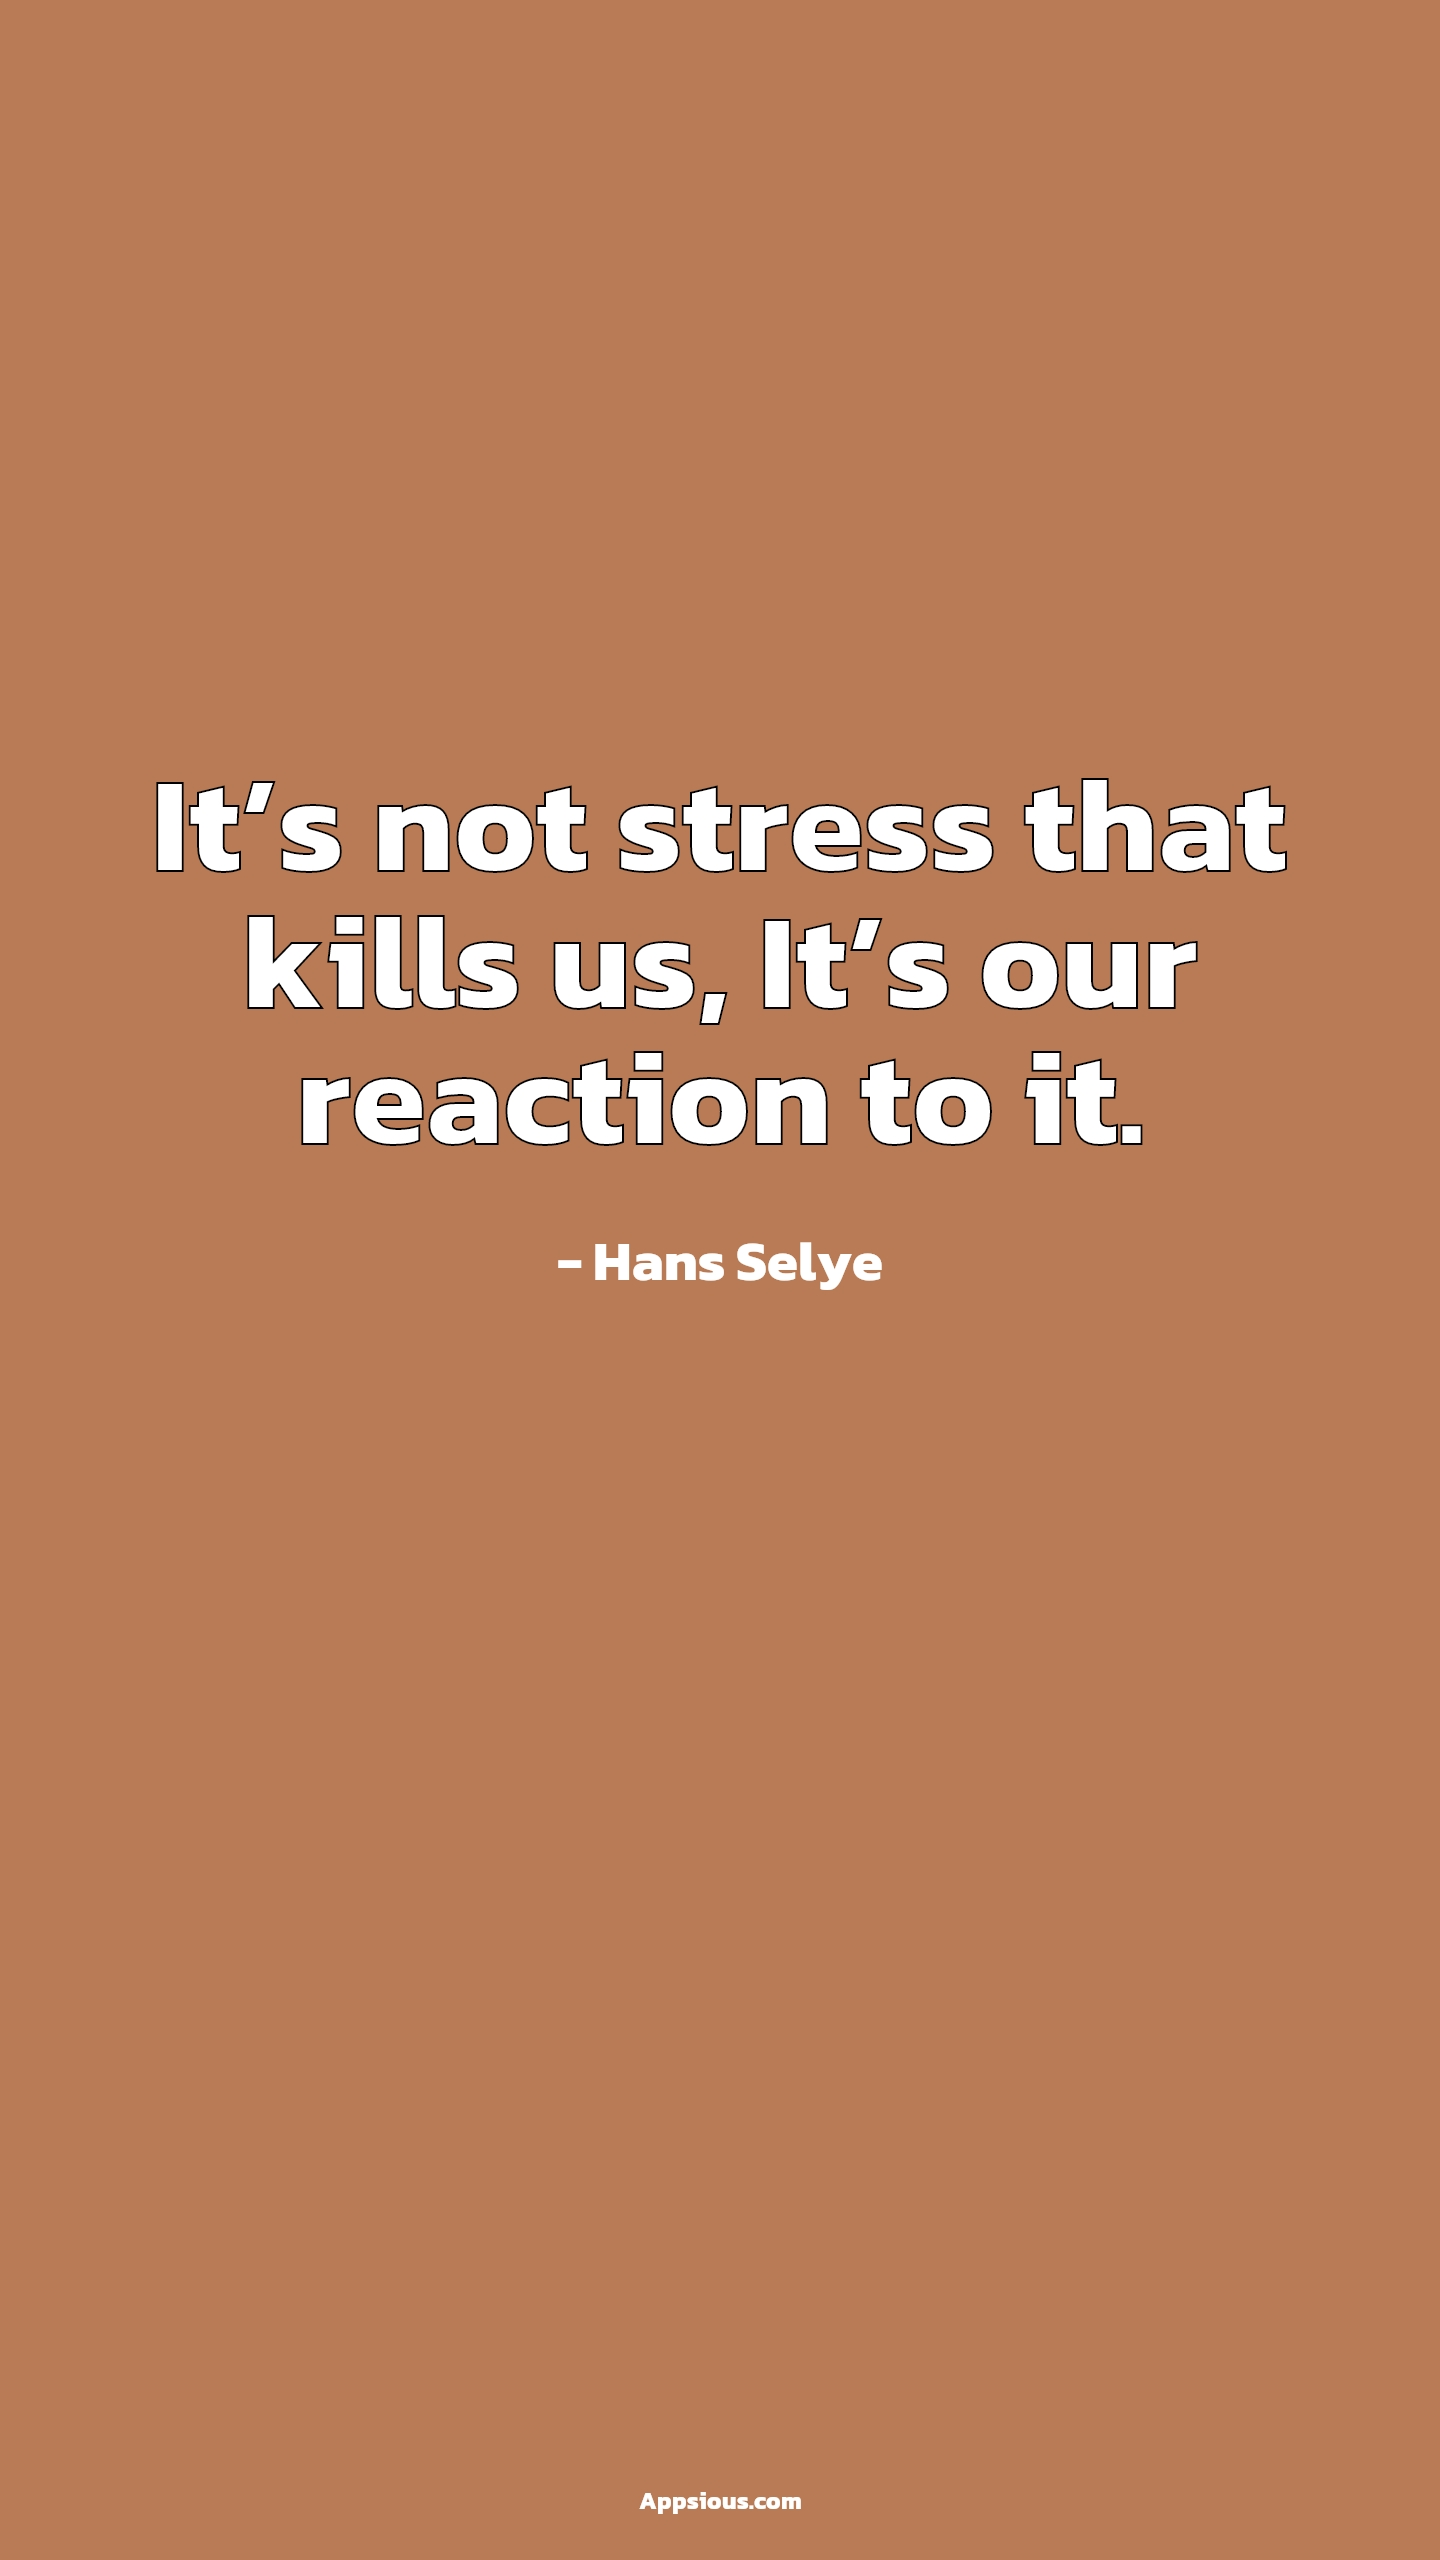 It's not stress that kills us, It's our reaction to it.